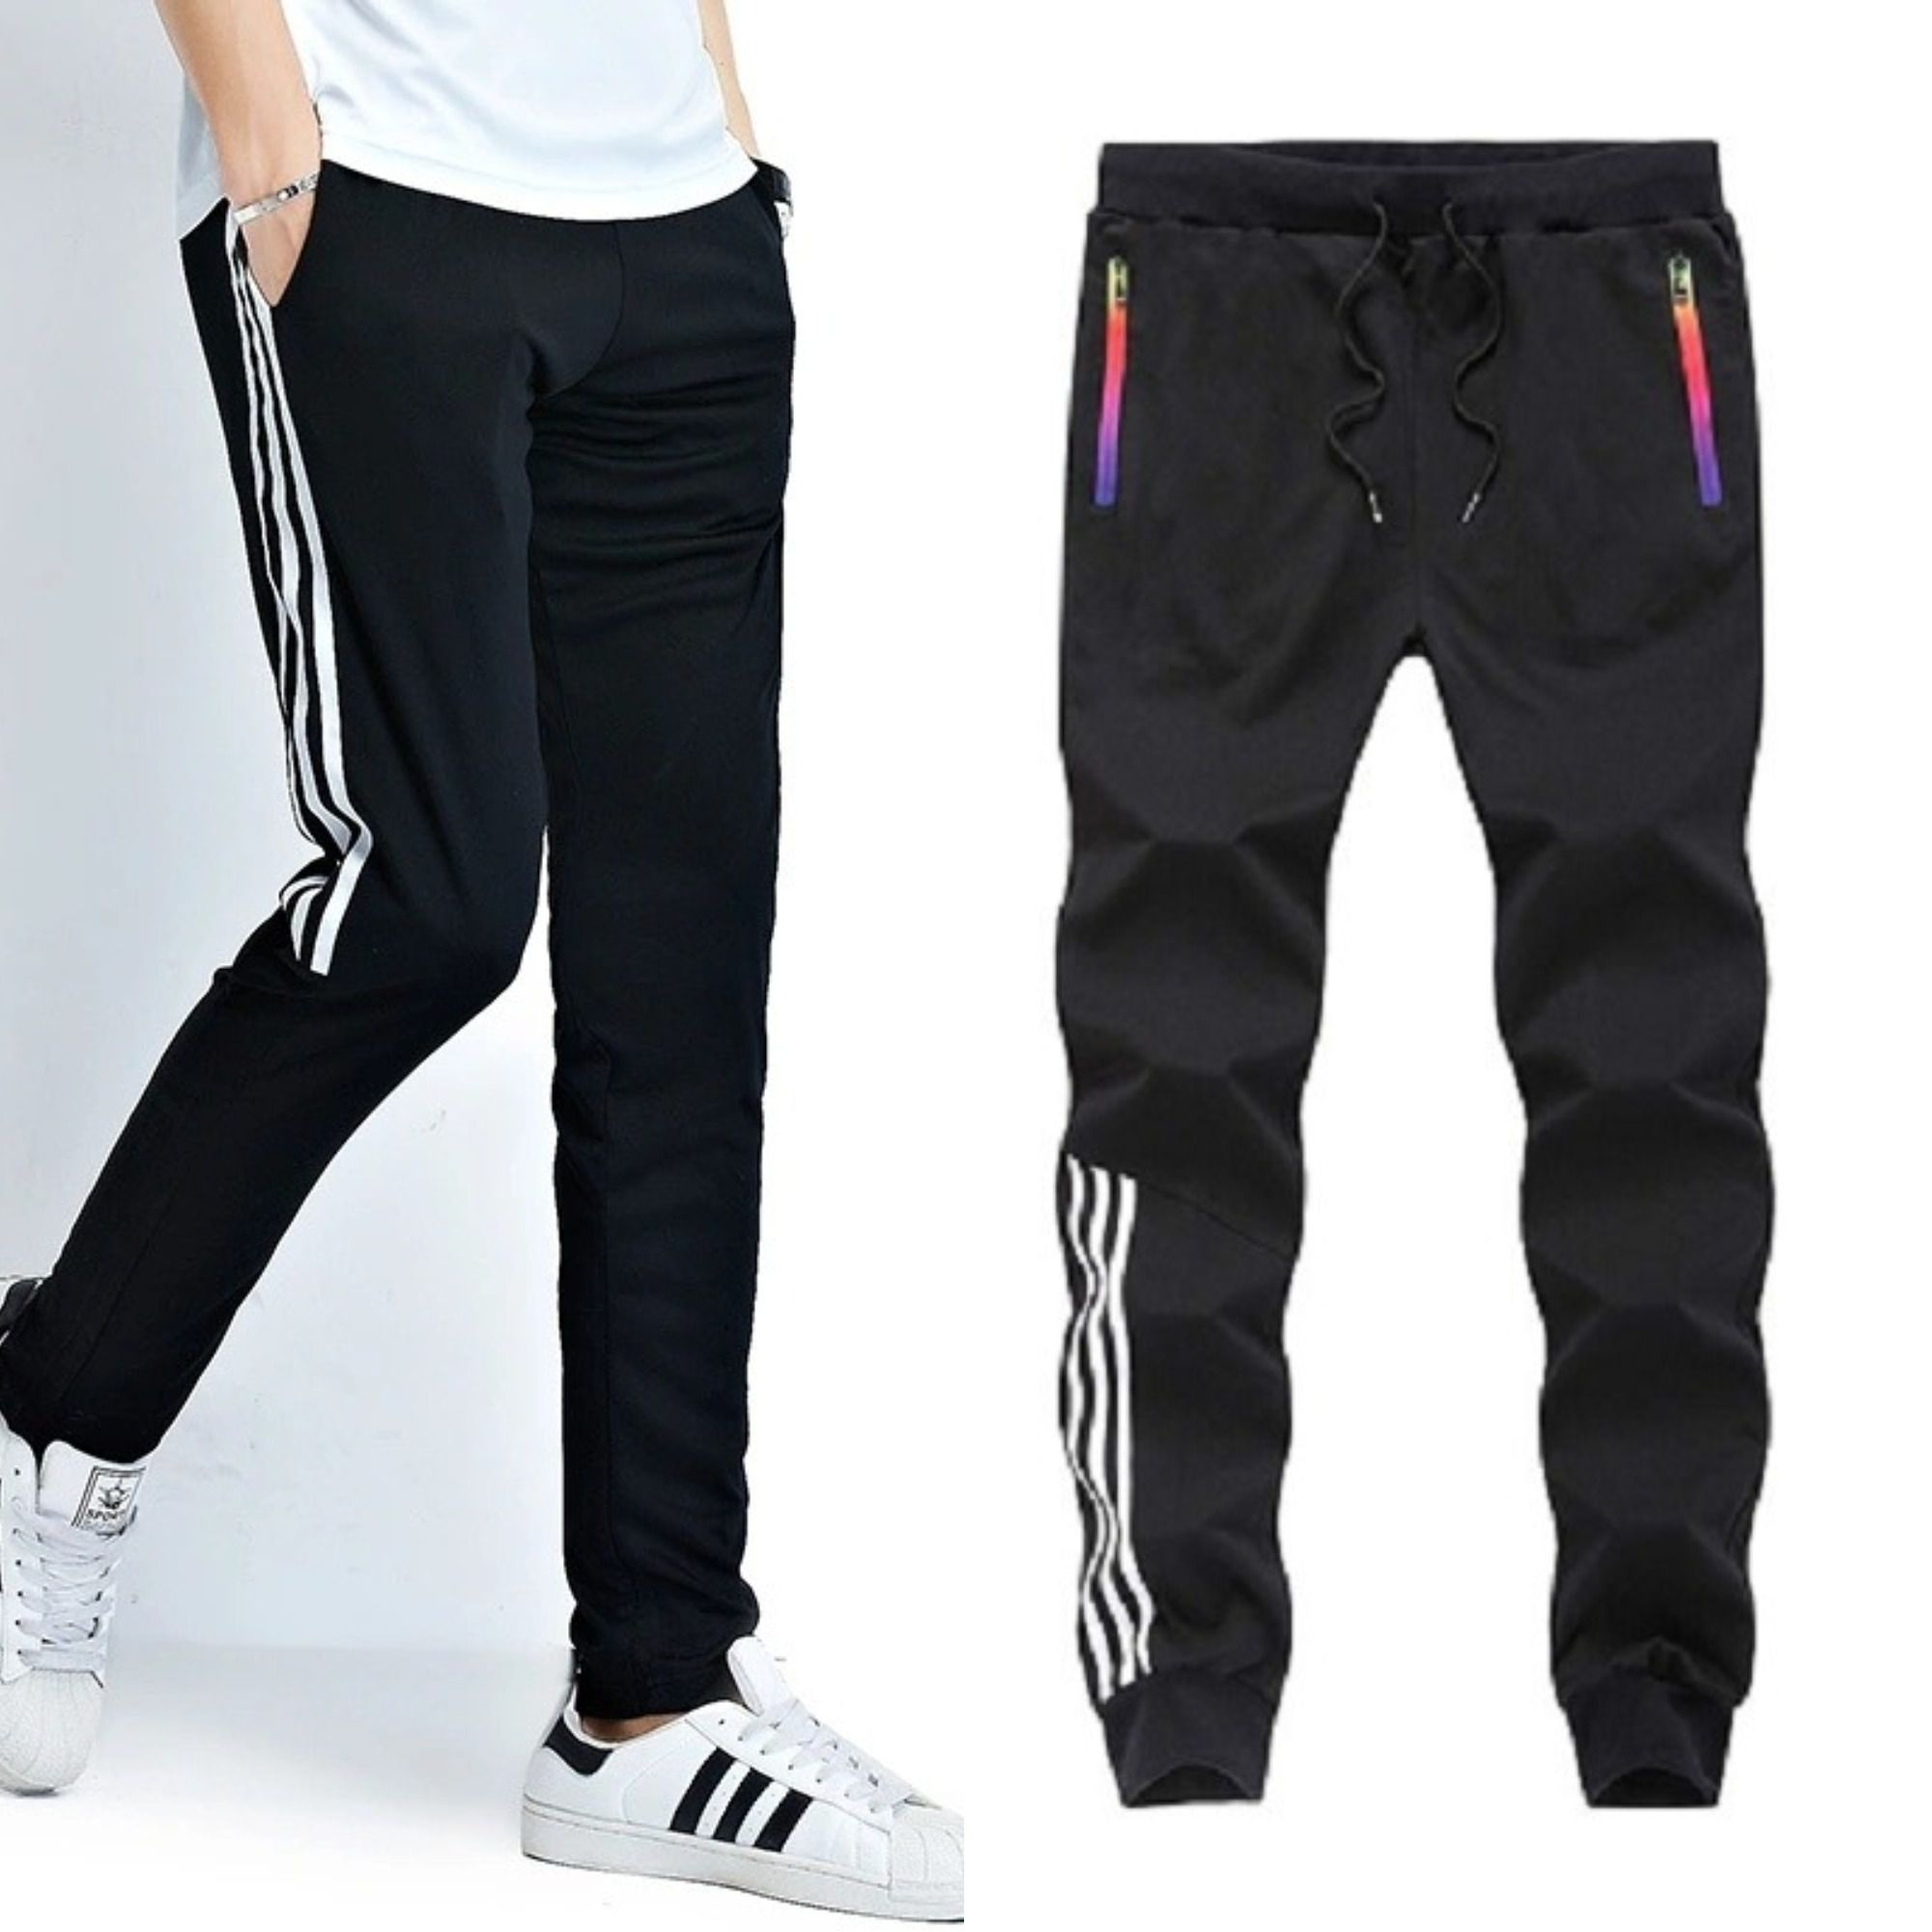 Joggers Park Pack Of 2 Black Skinny Fit Sports Track Pants For Mens